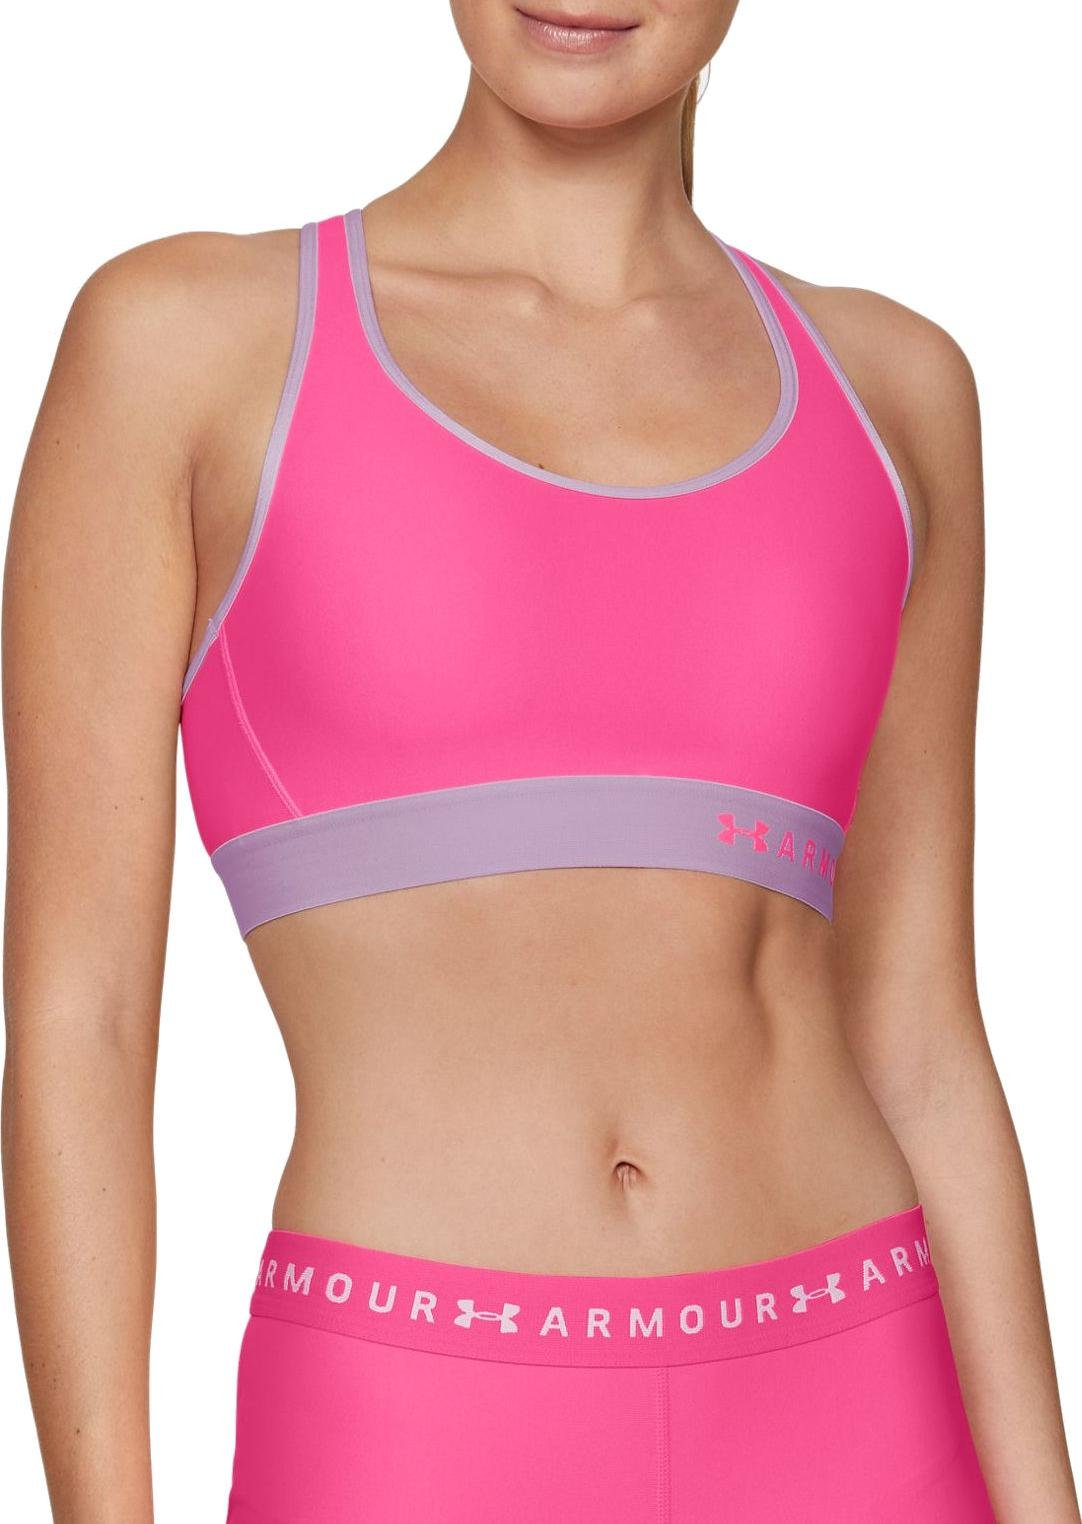 BH Under Armour Armour Mid Keyhole Bra